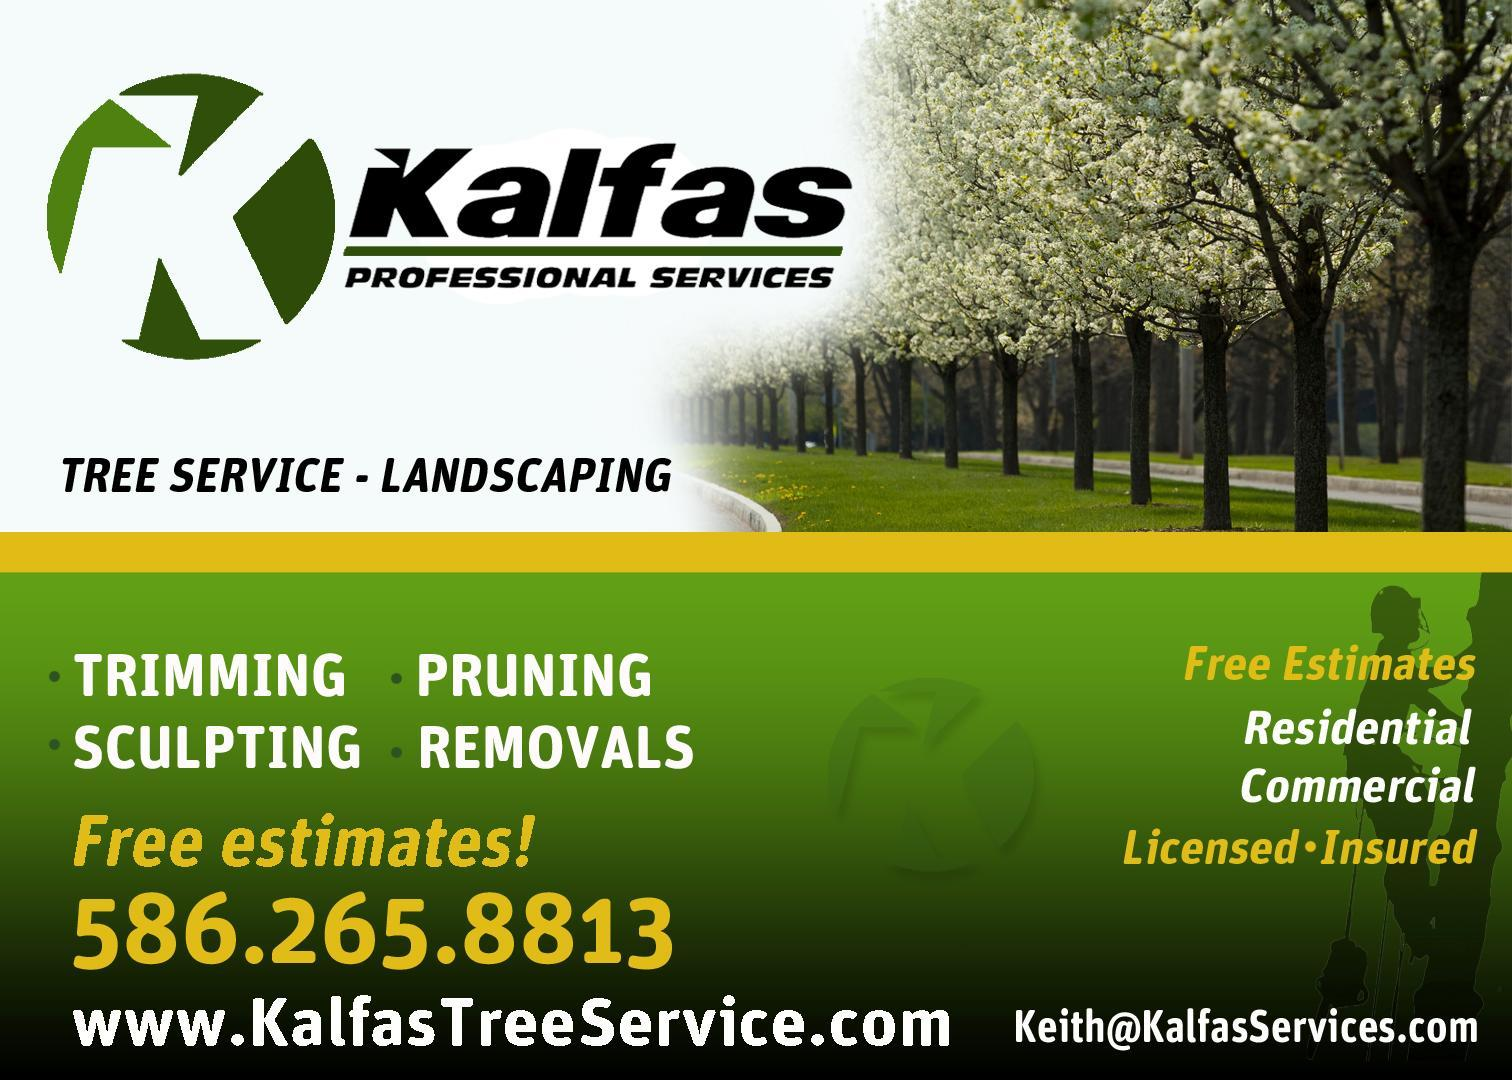 Land Clearing Business Cards Image collections - Card Design And ...